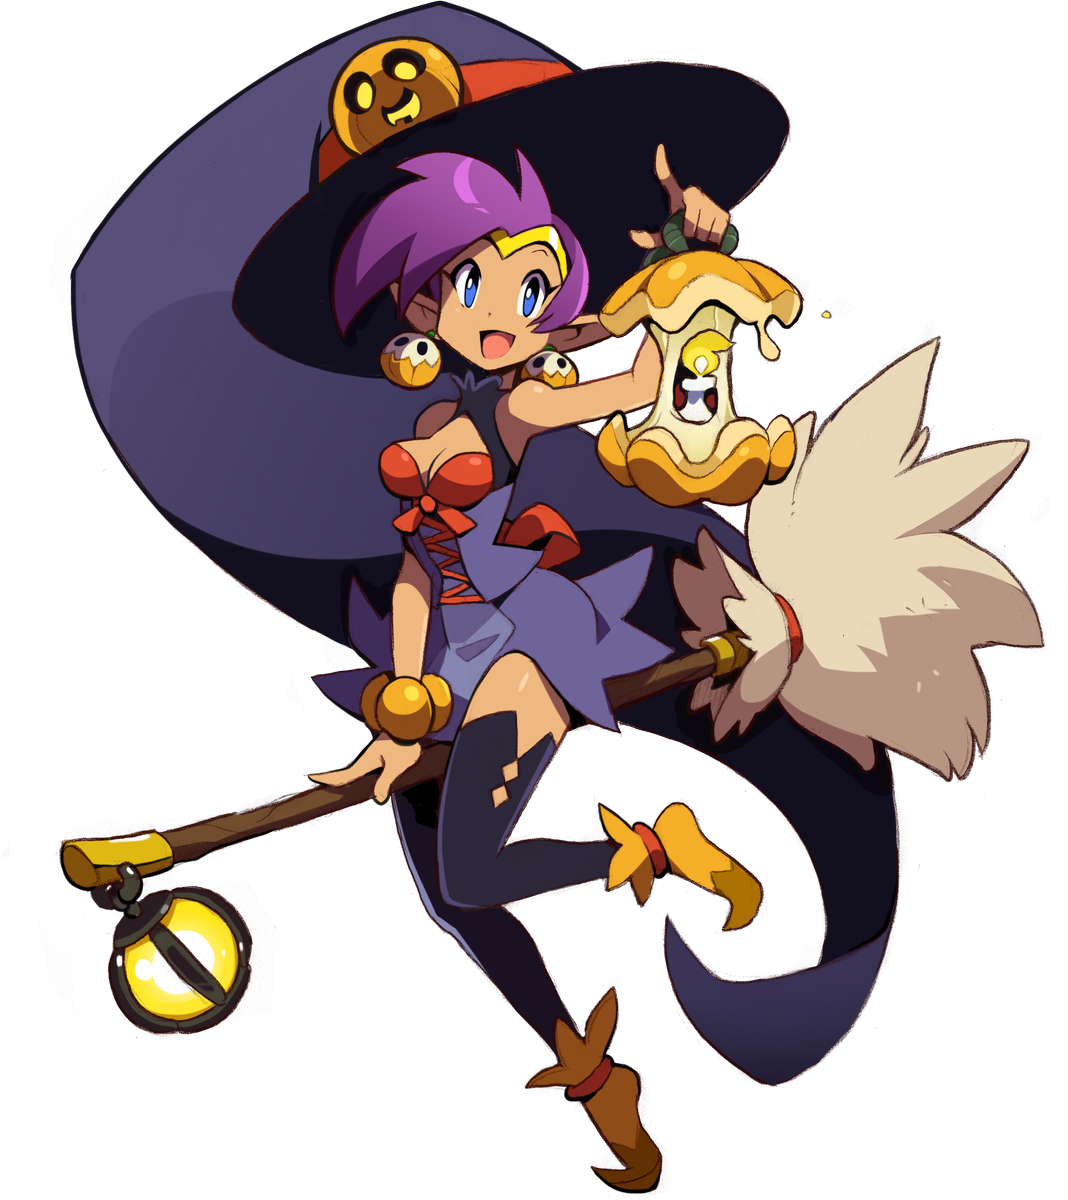 Witch Shantae Shantae Know Your Meme Character Art Character Design Character Design Inspiration